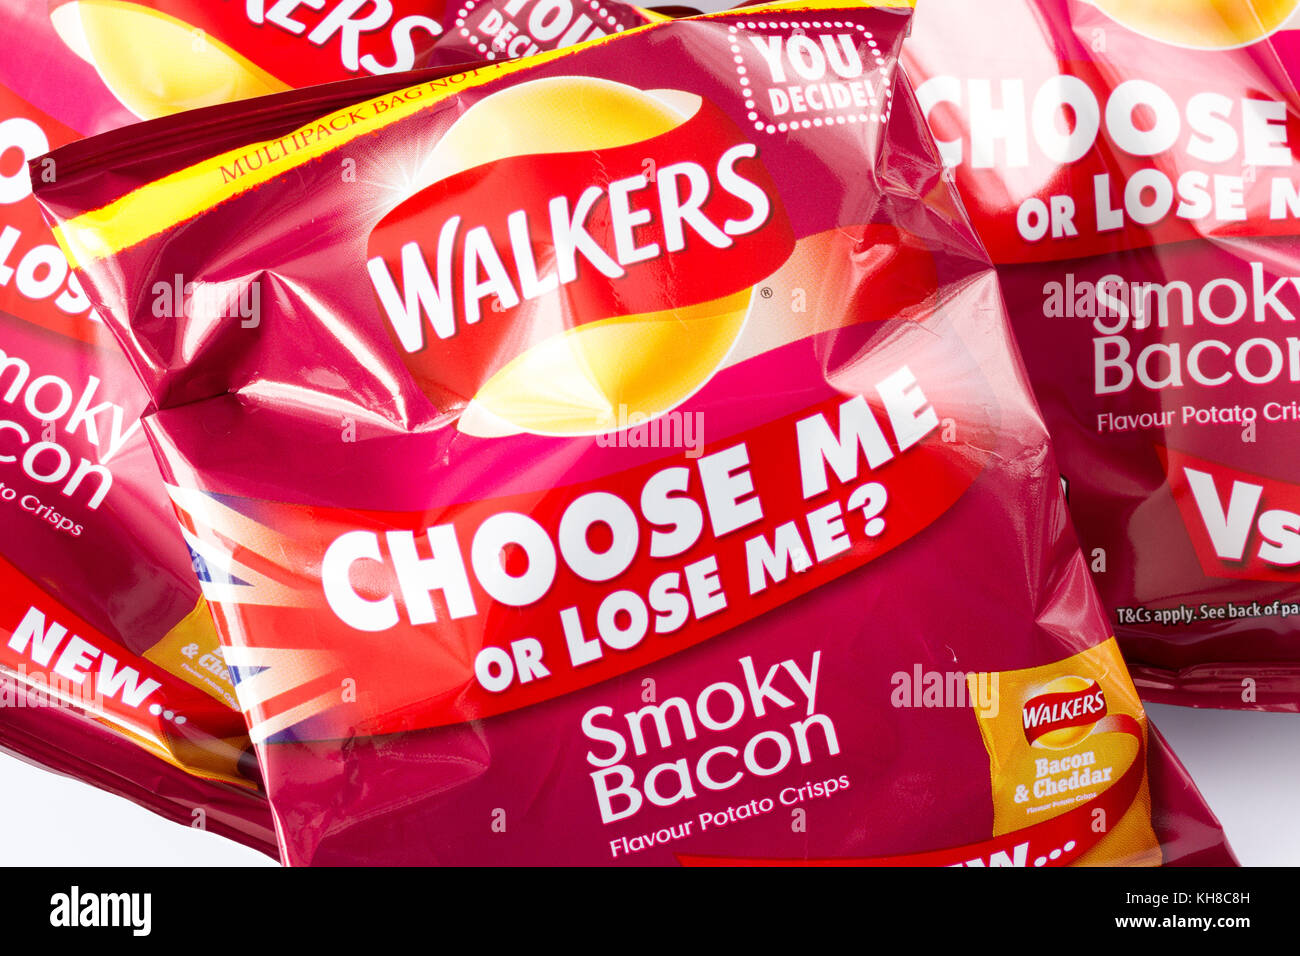 Packets of Walkers smoky bacon flavour crisps with the 'choose me or lose me?' slogan, November 2017, United - Stock Image